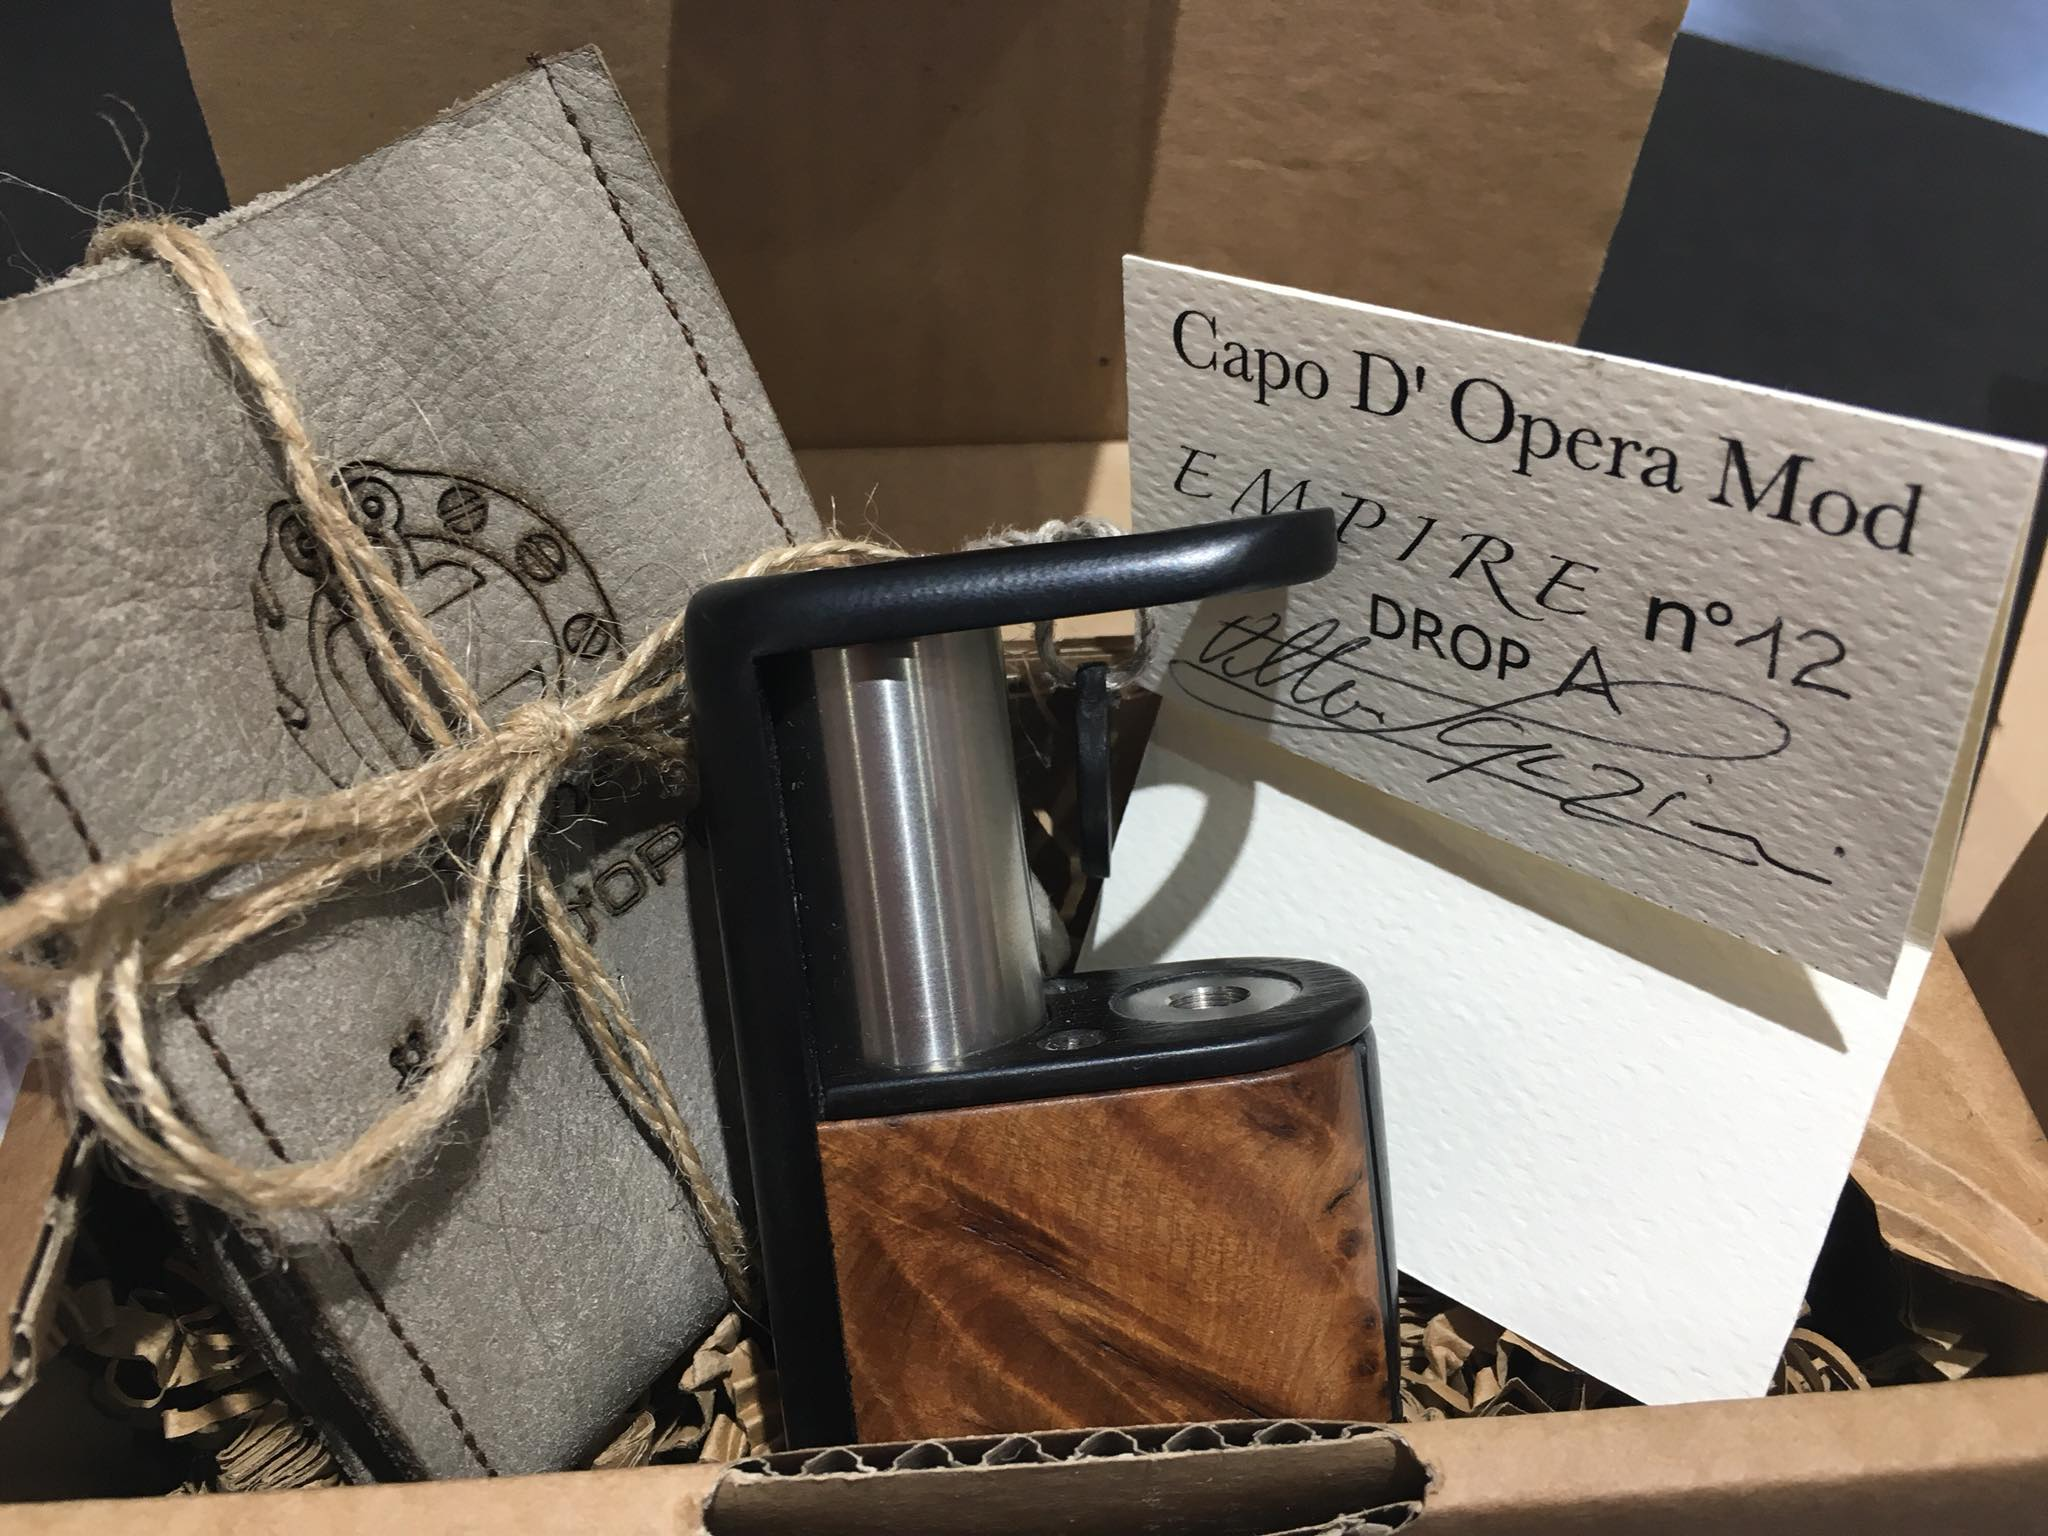 Empire Box by Capo D'Opera Mod modello DROP A